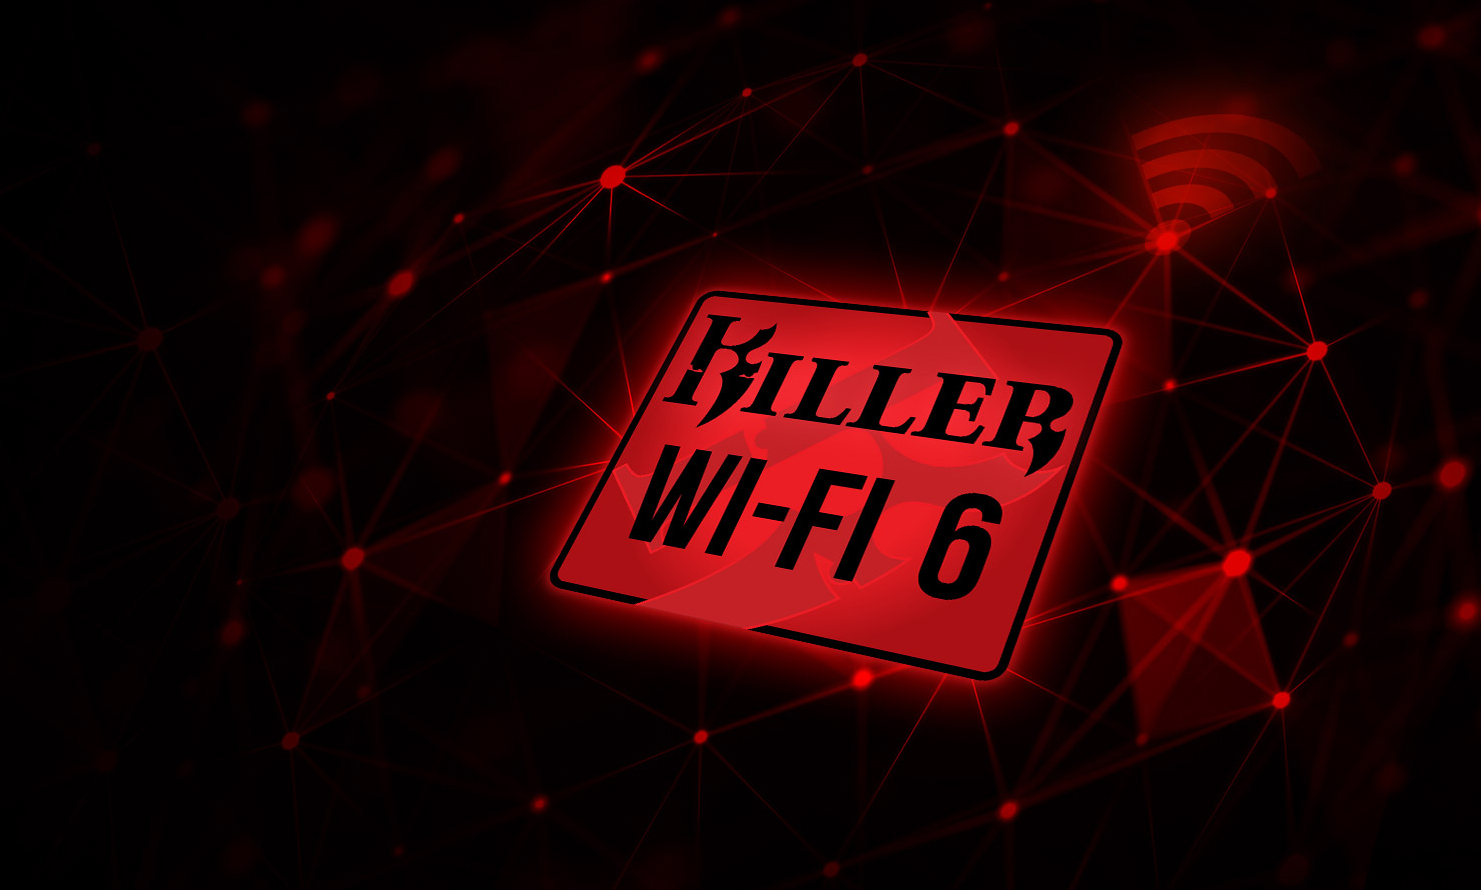 A large Killer Wi-Fi 6 logo.